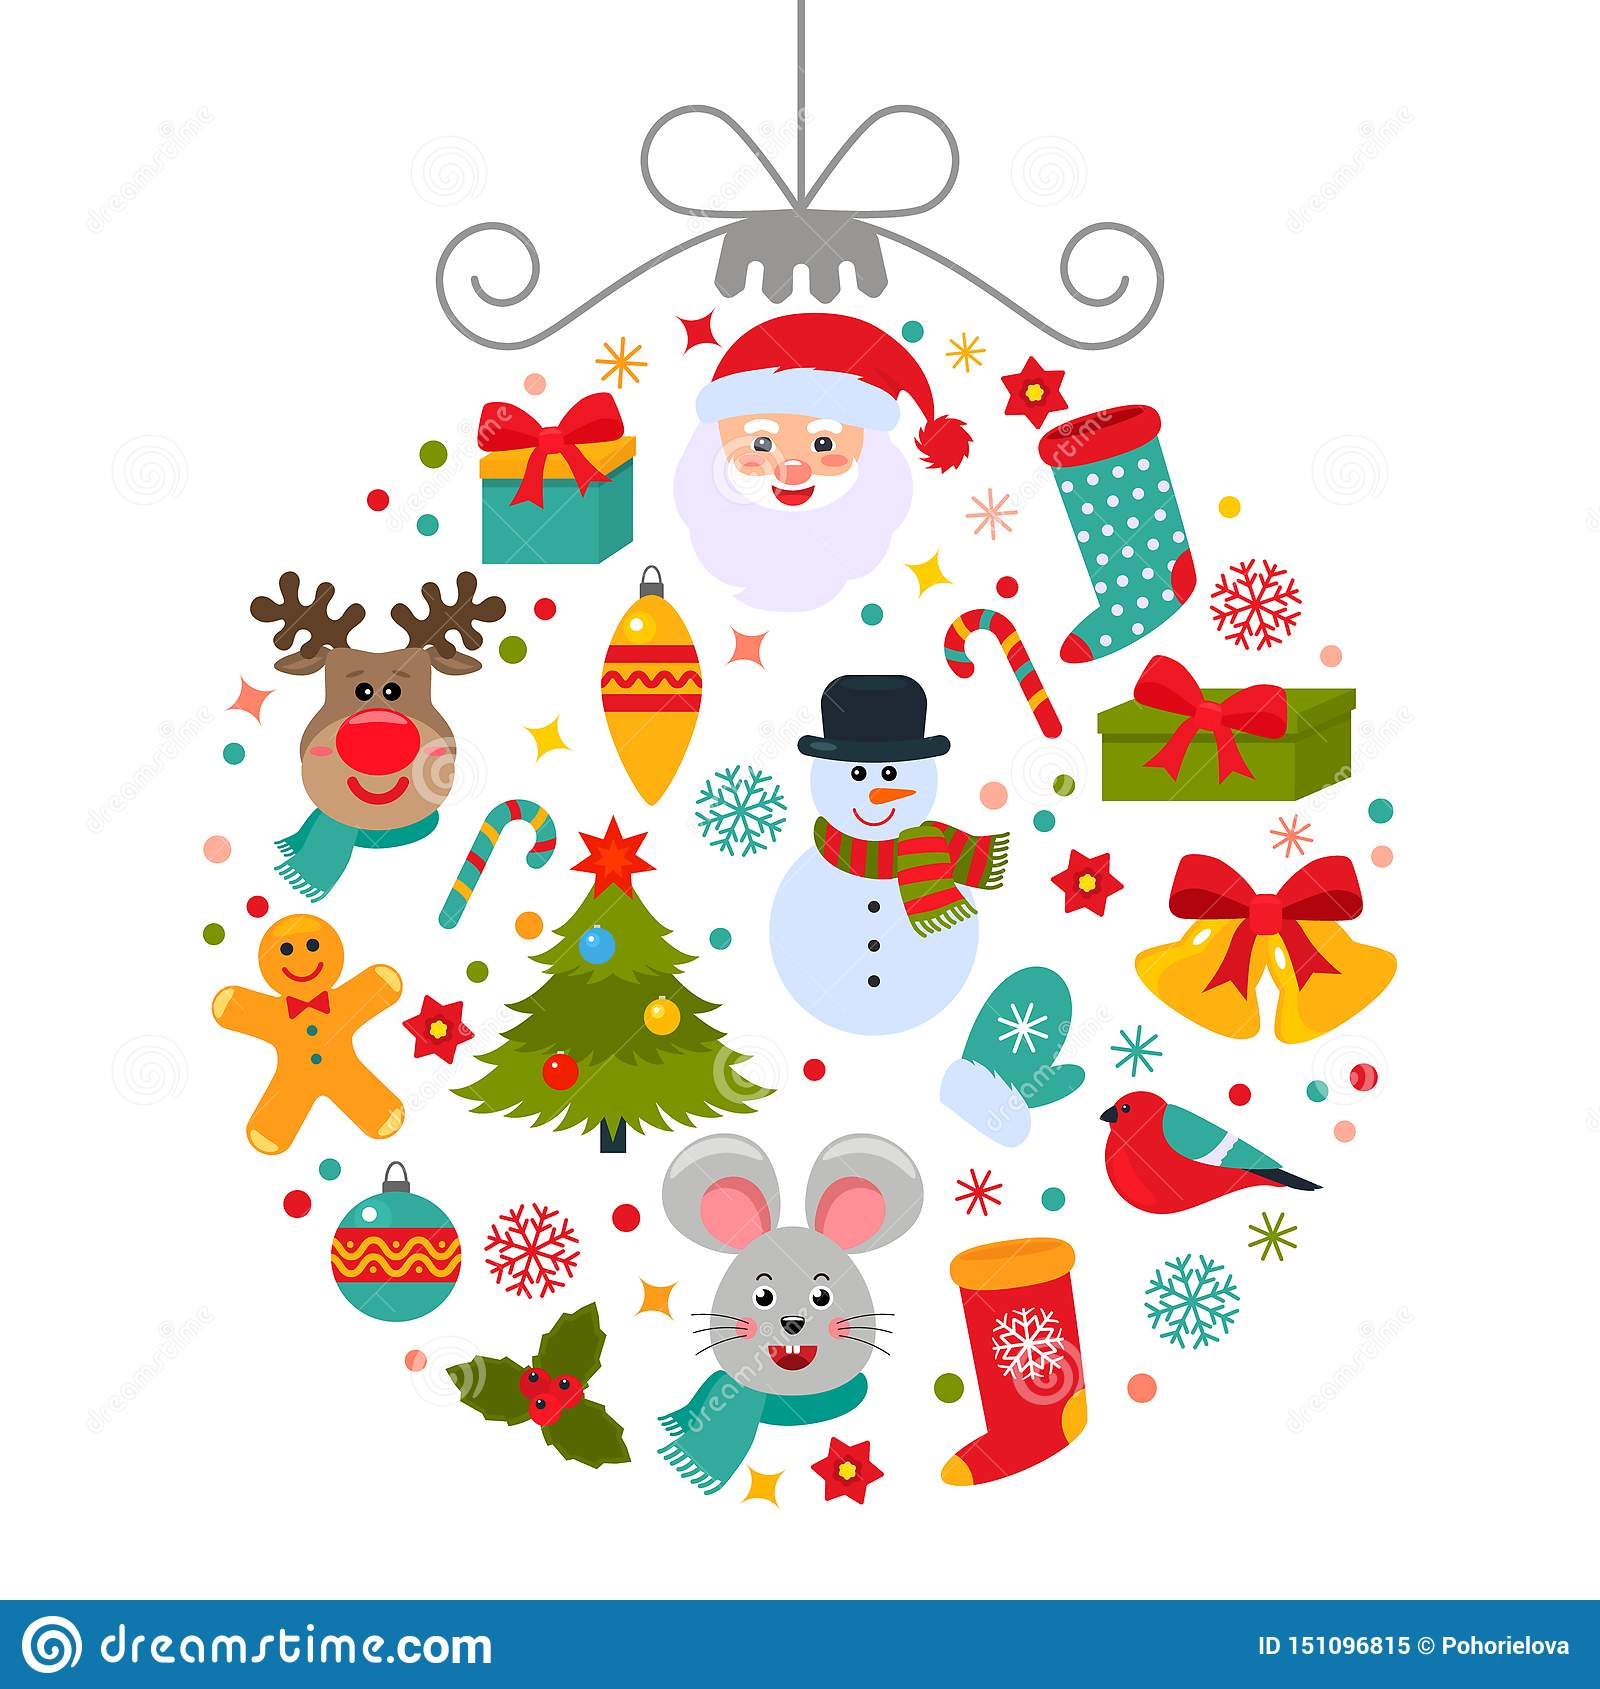 Happy New Year Clipart 2020 74